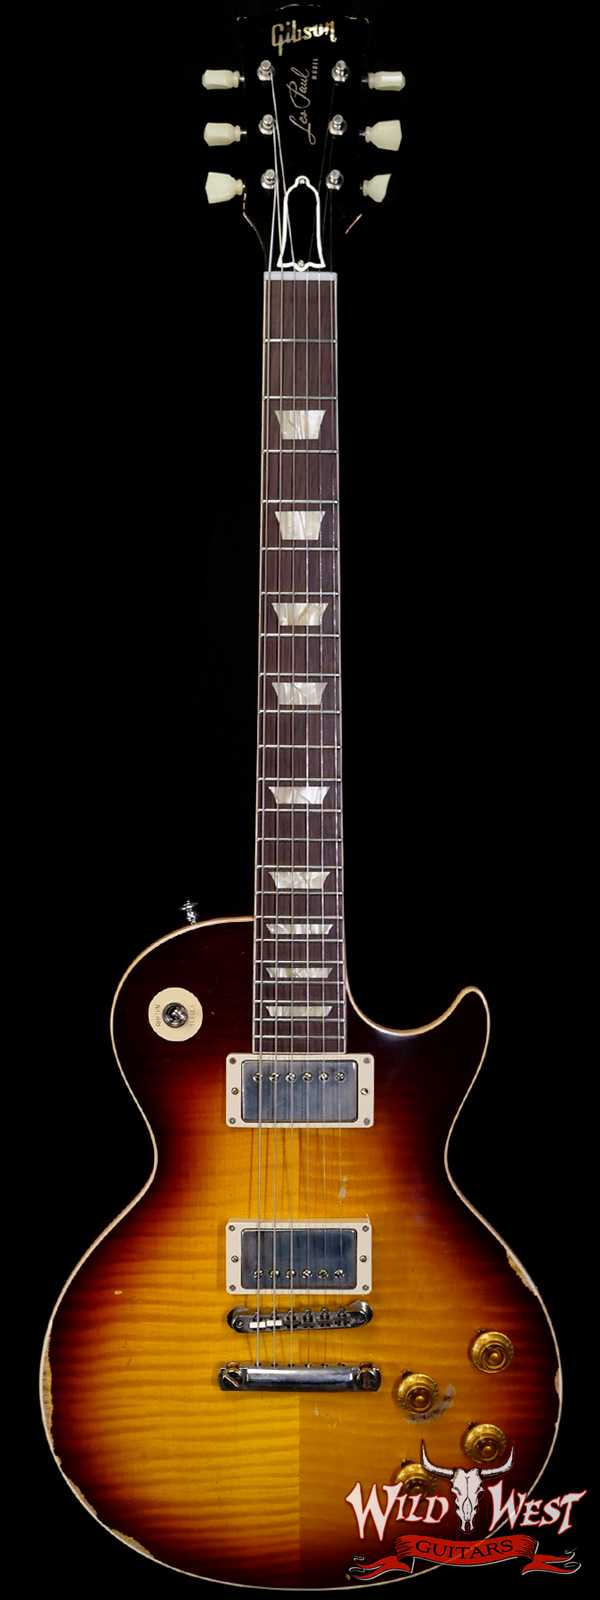 Gibson Custom Shop M2M Hand Selected Kill Top 60th Anniversary 1959 Les Paul Standard Heavy Aged Faded Tobacco Burst 8.40 LBS